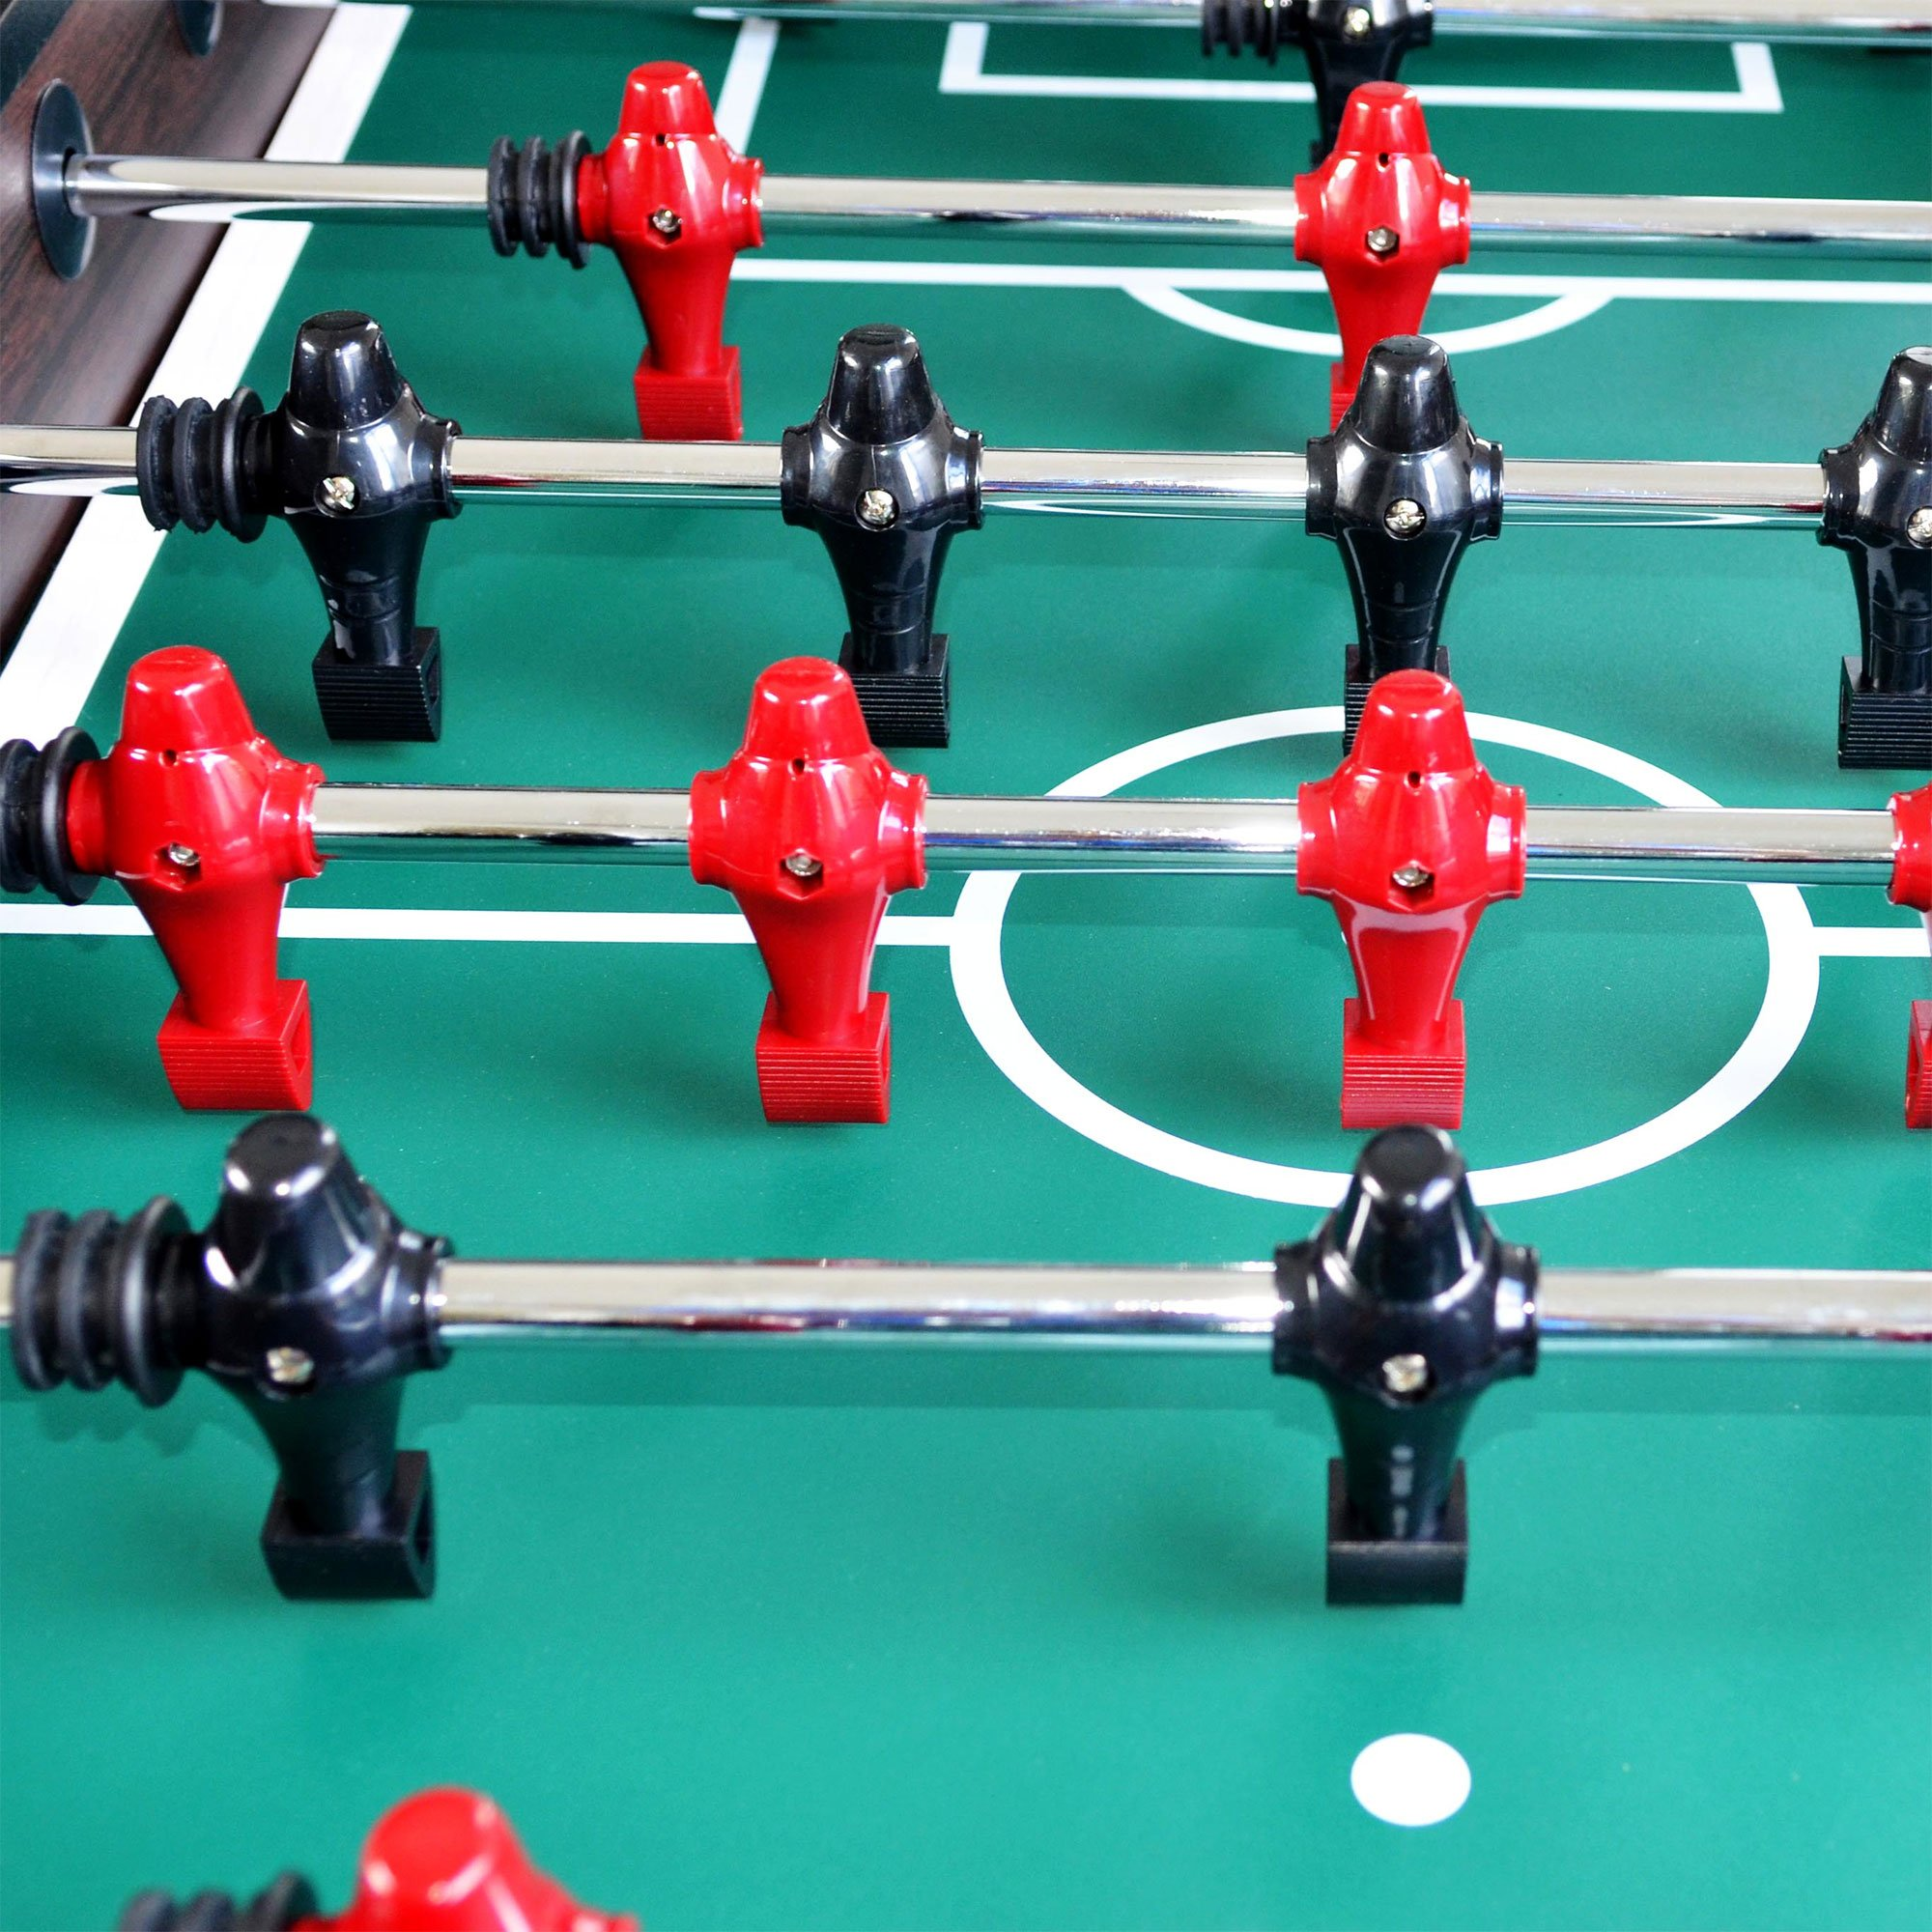 Lancaster 54-Inch Foosball Game Room Table by Lancaster Gaming Company (Image #2)